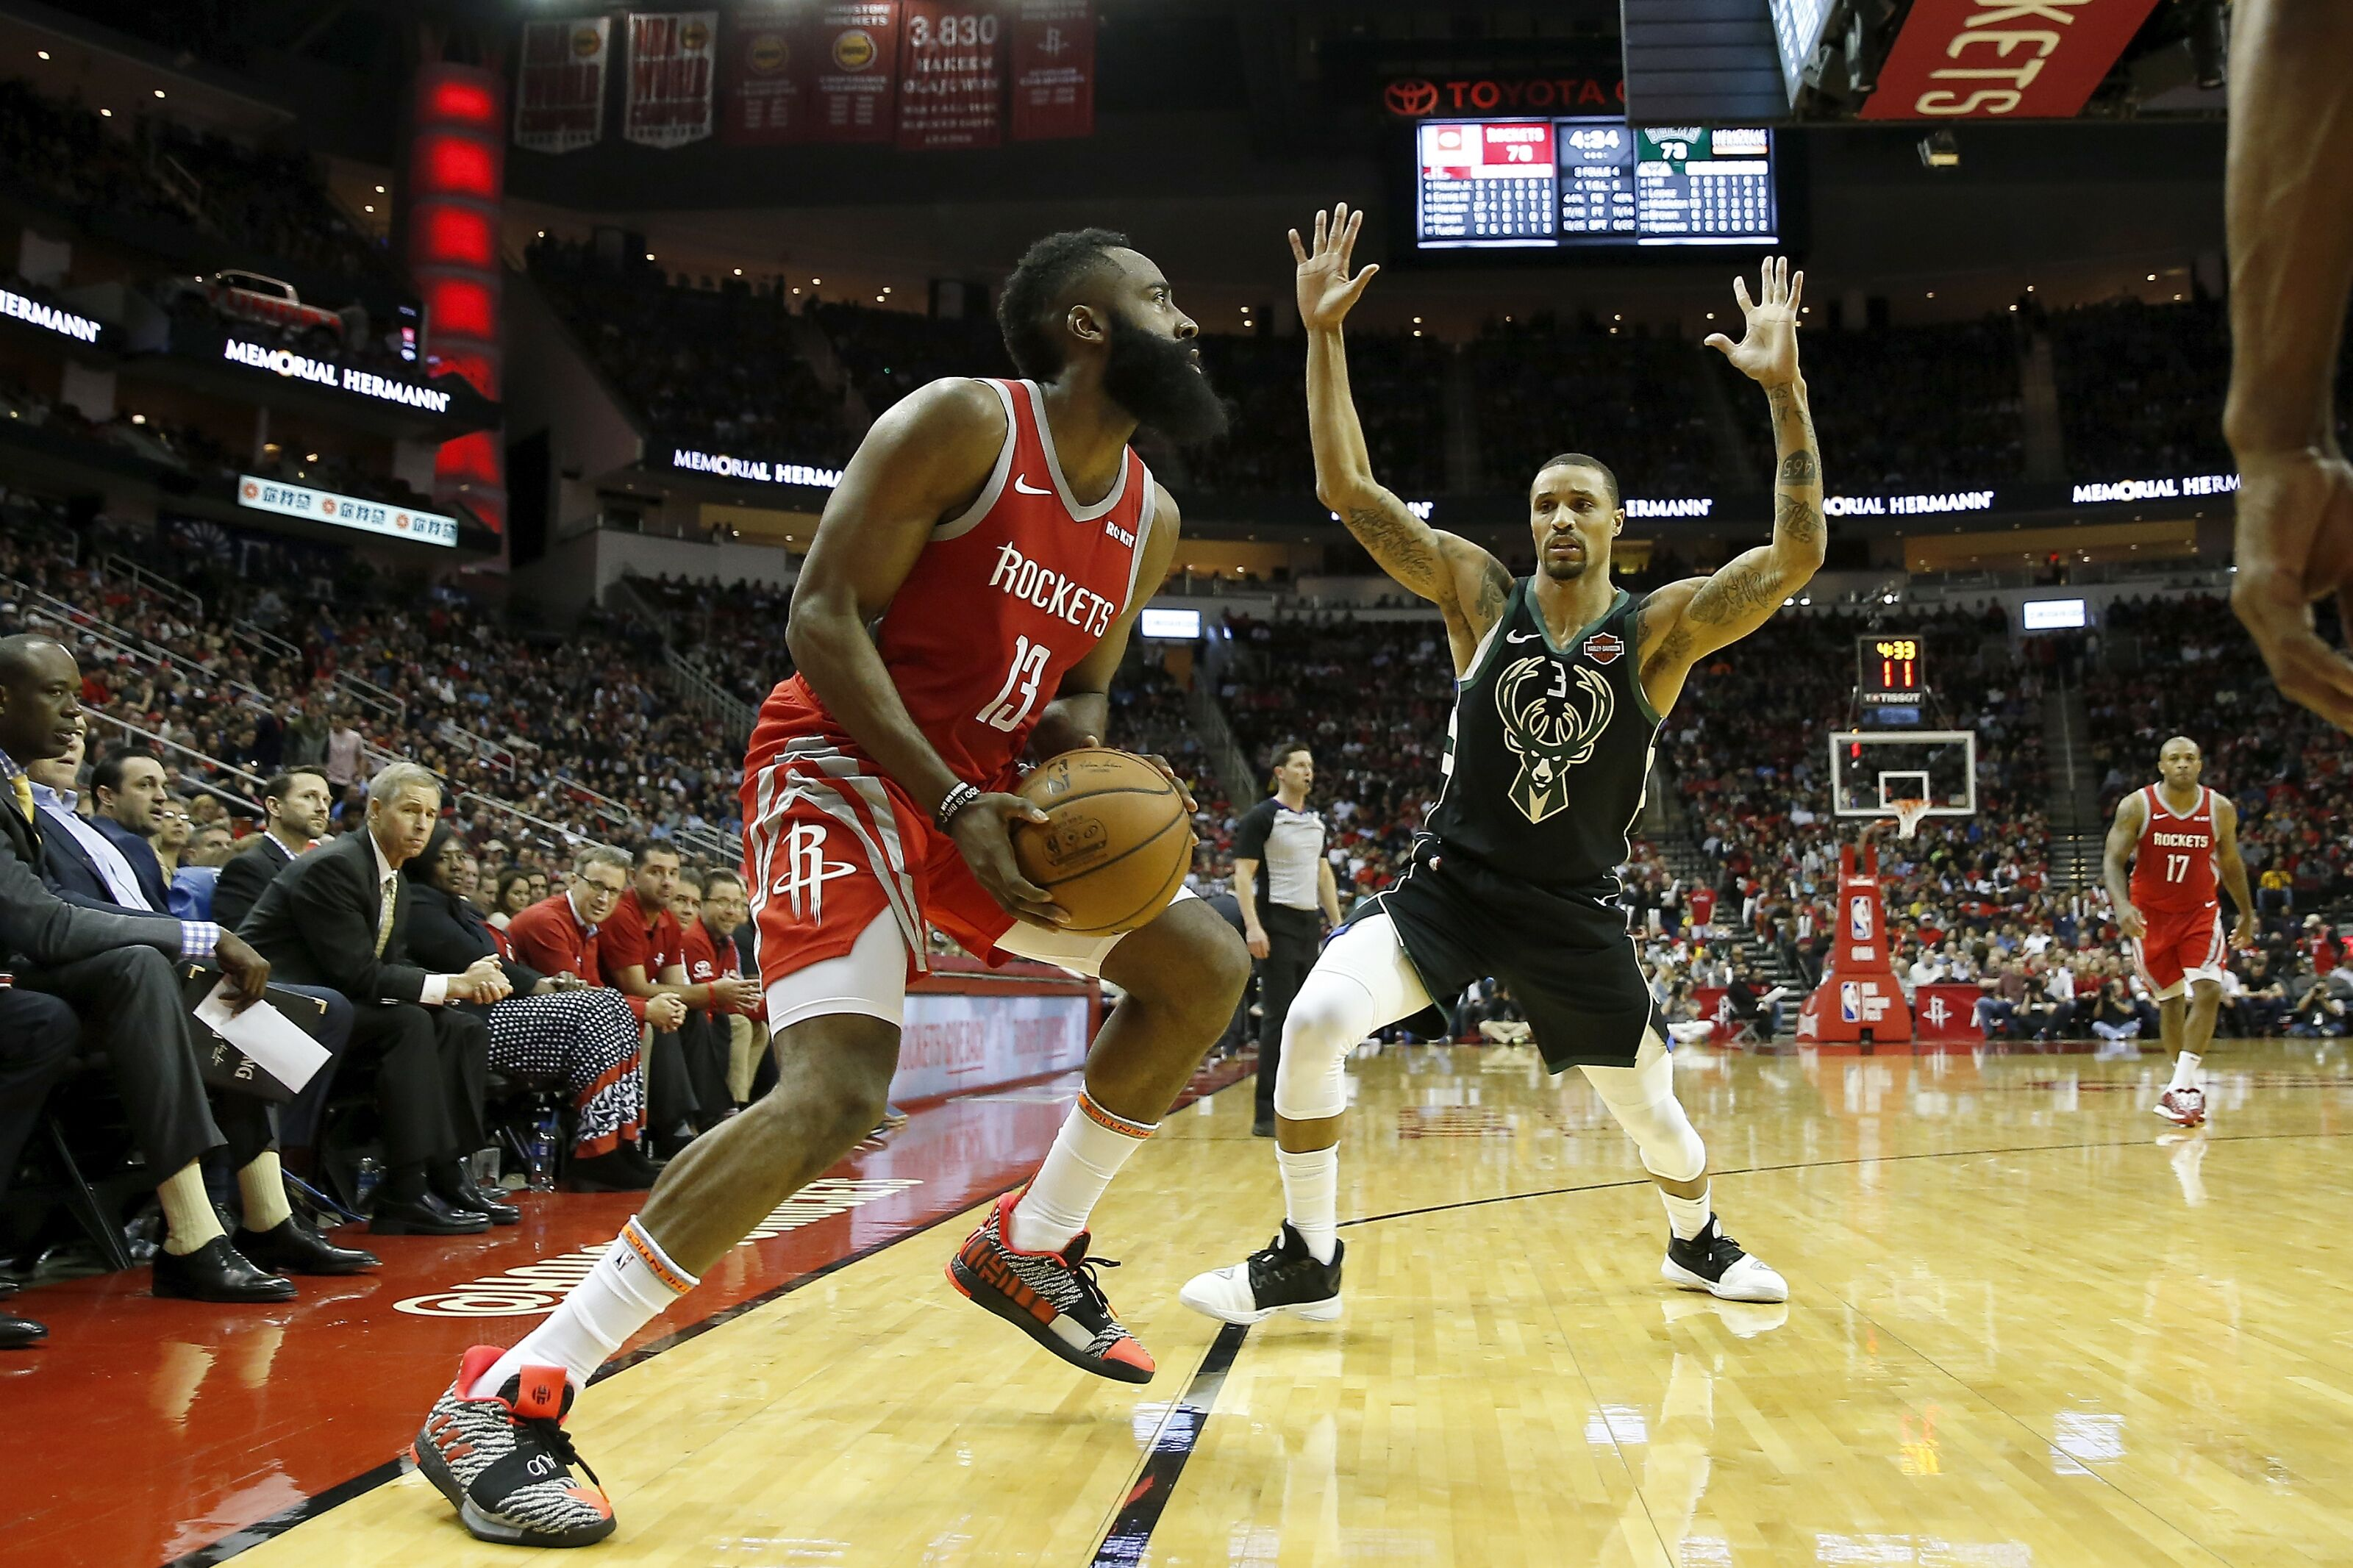 HOUSTON, TX - JANUARY 09: James Harden #13 of the Houston Rockets steps back for a three point shot defended by George Hill #3 of the Milwaukee Bucks in the second half at Toyota Center on January 9, 2019 in Houston, Texas. NOTE TO USER: User expressly acknowledges and agrees that, by downloading and or using this photograph, User is consenting to the terms and conditions of the Getty Images License Agreement. (Photo by Tim Warner/Getty Images)